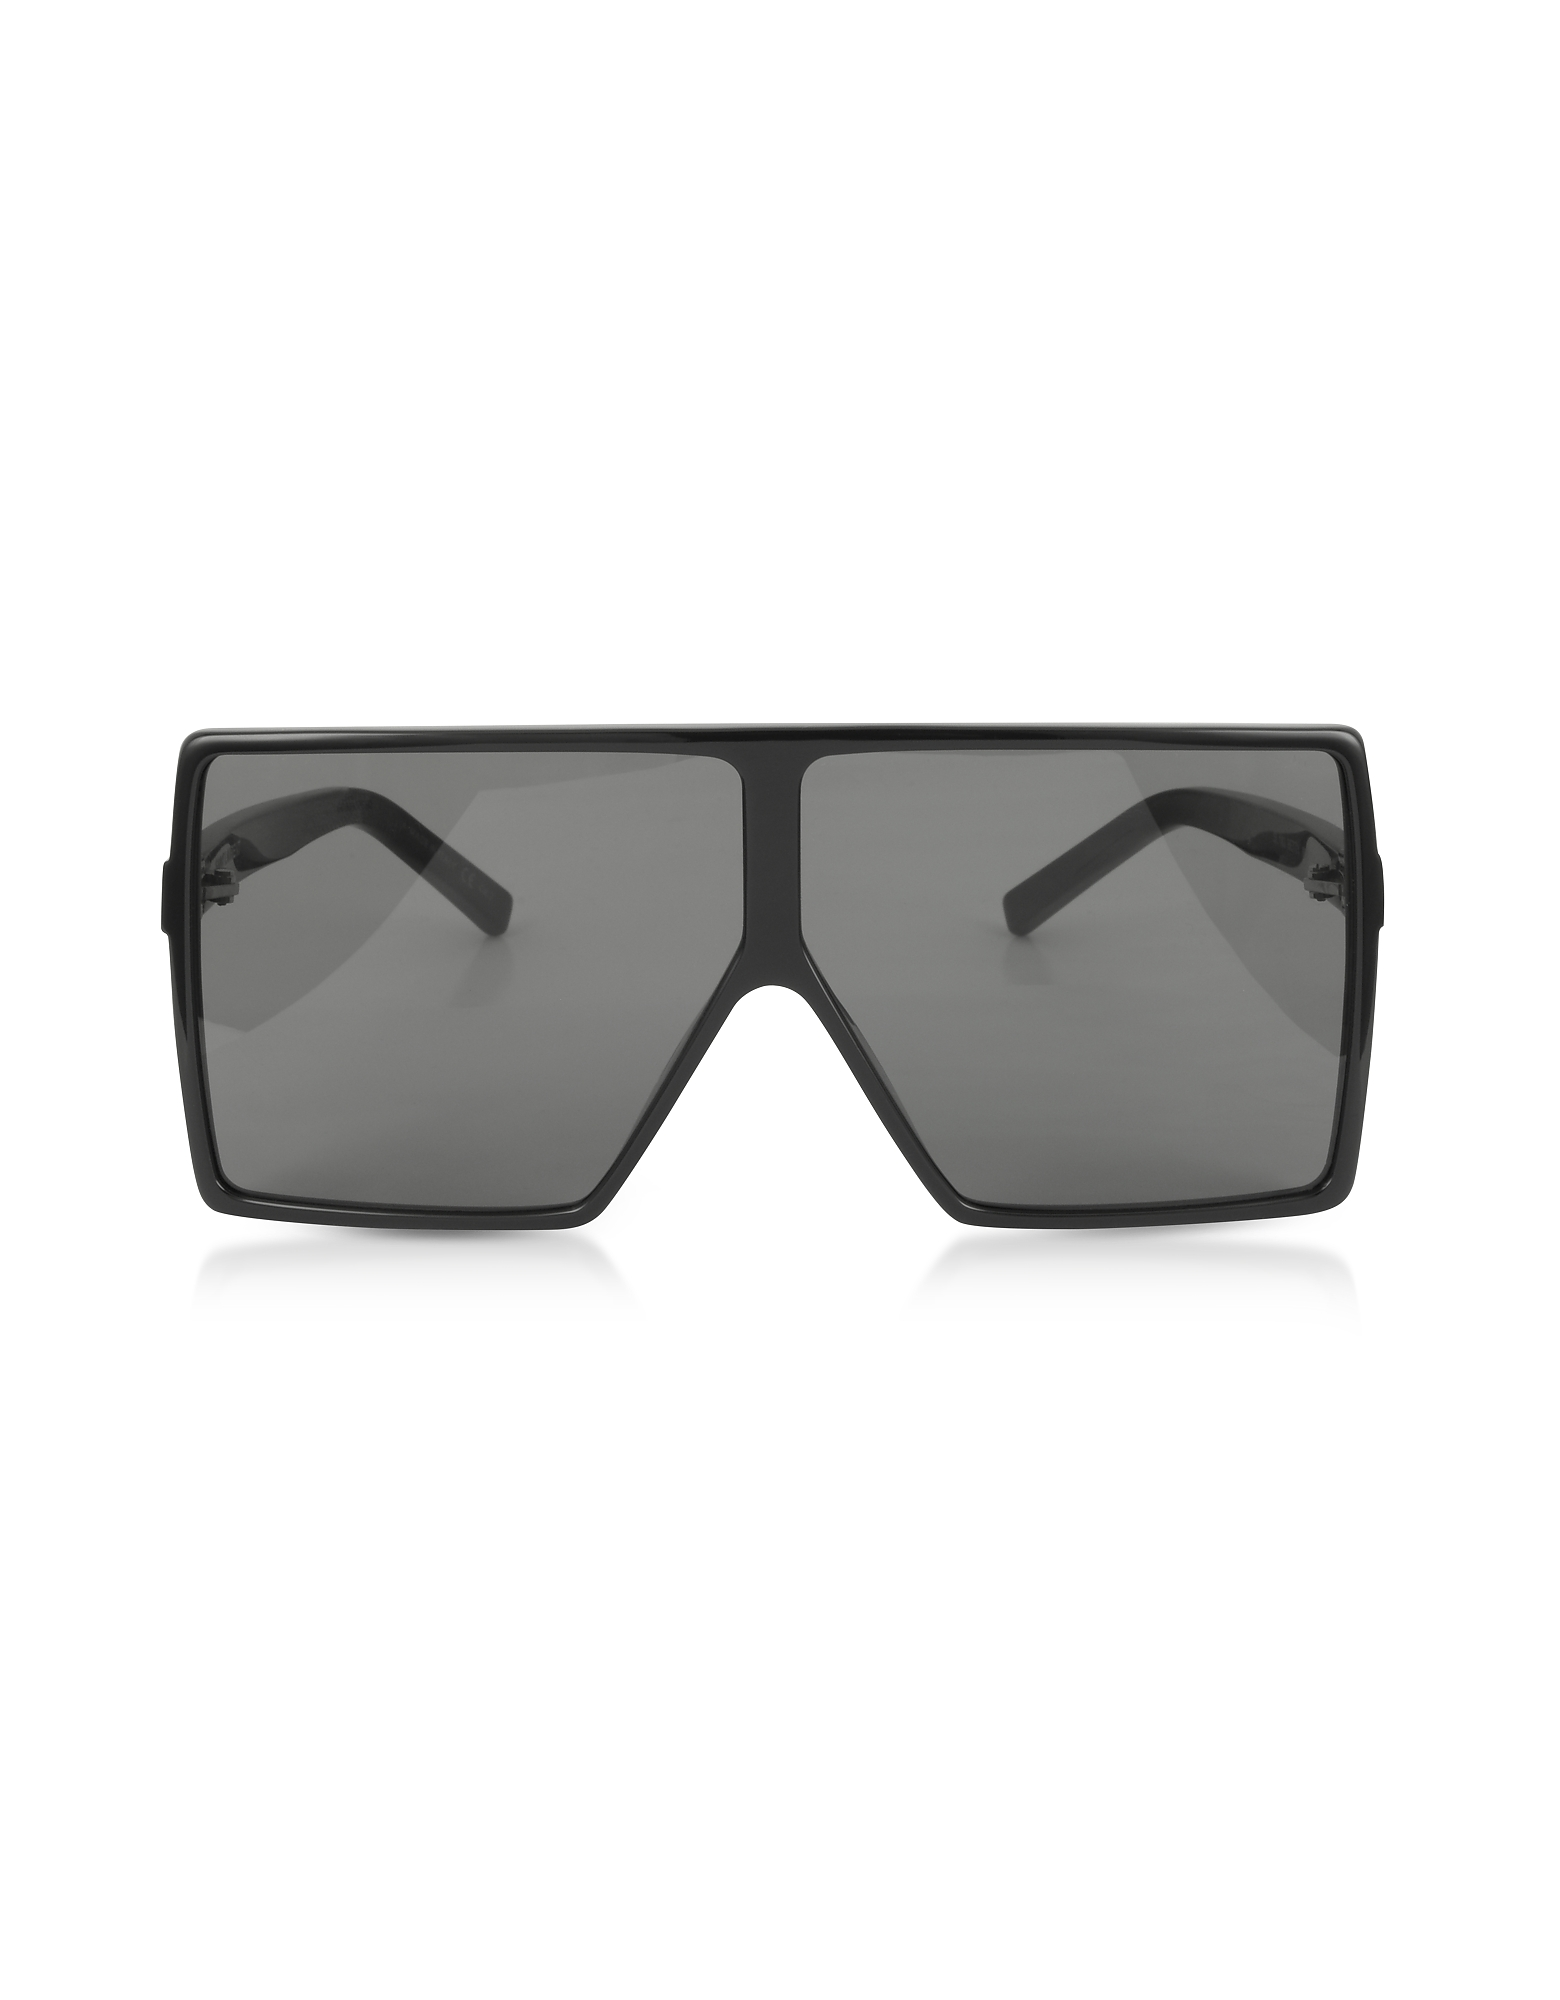 New Wave 183 Shiny Black Acetate Betty Sunglasses